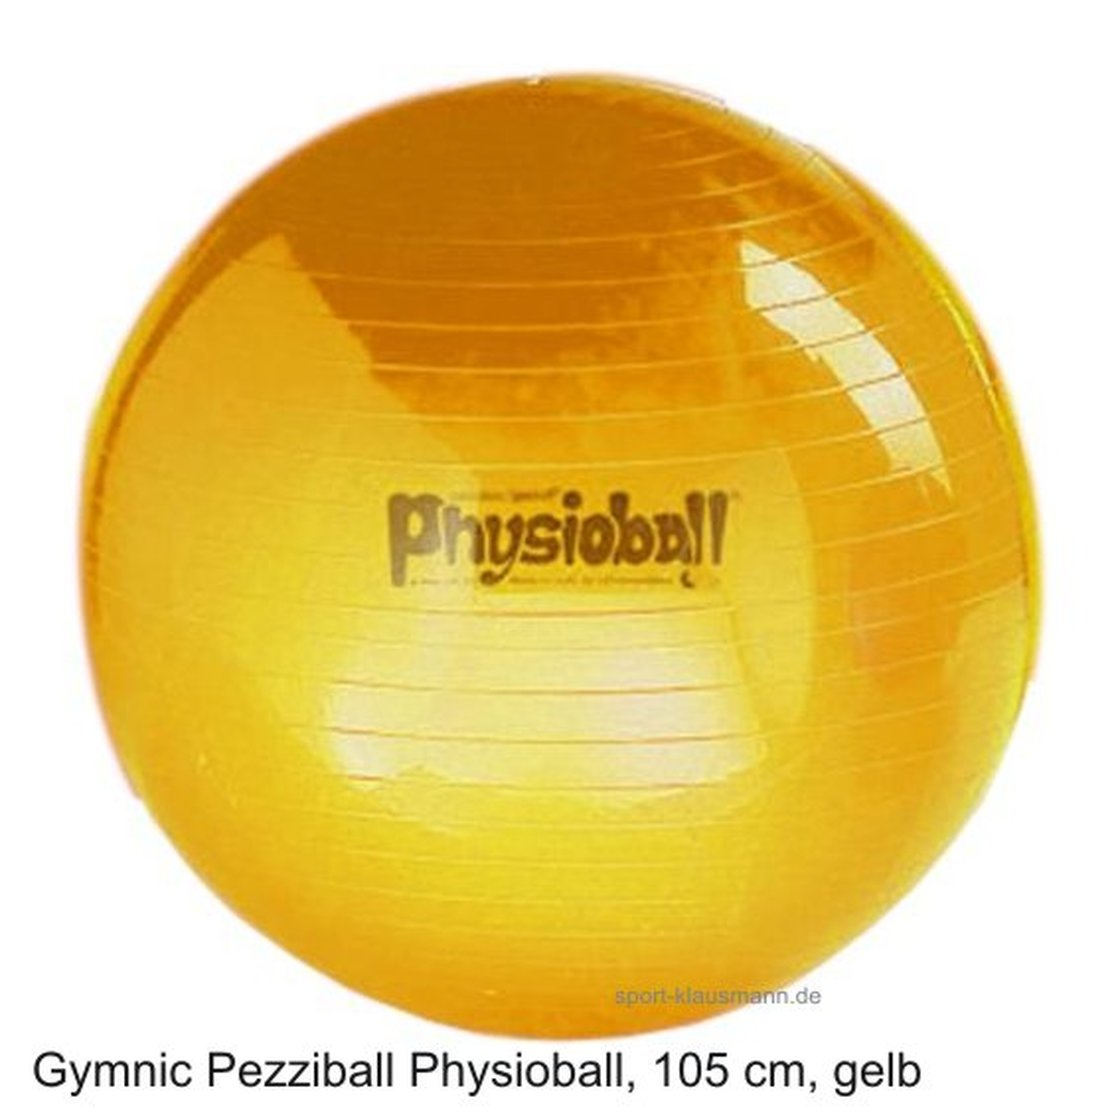 pezzi gymnastikball physioball sitzball 105 cm gelb. Black Bedroom Furniture Sets. Home Design Ideas